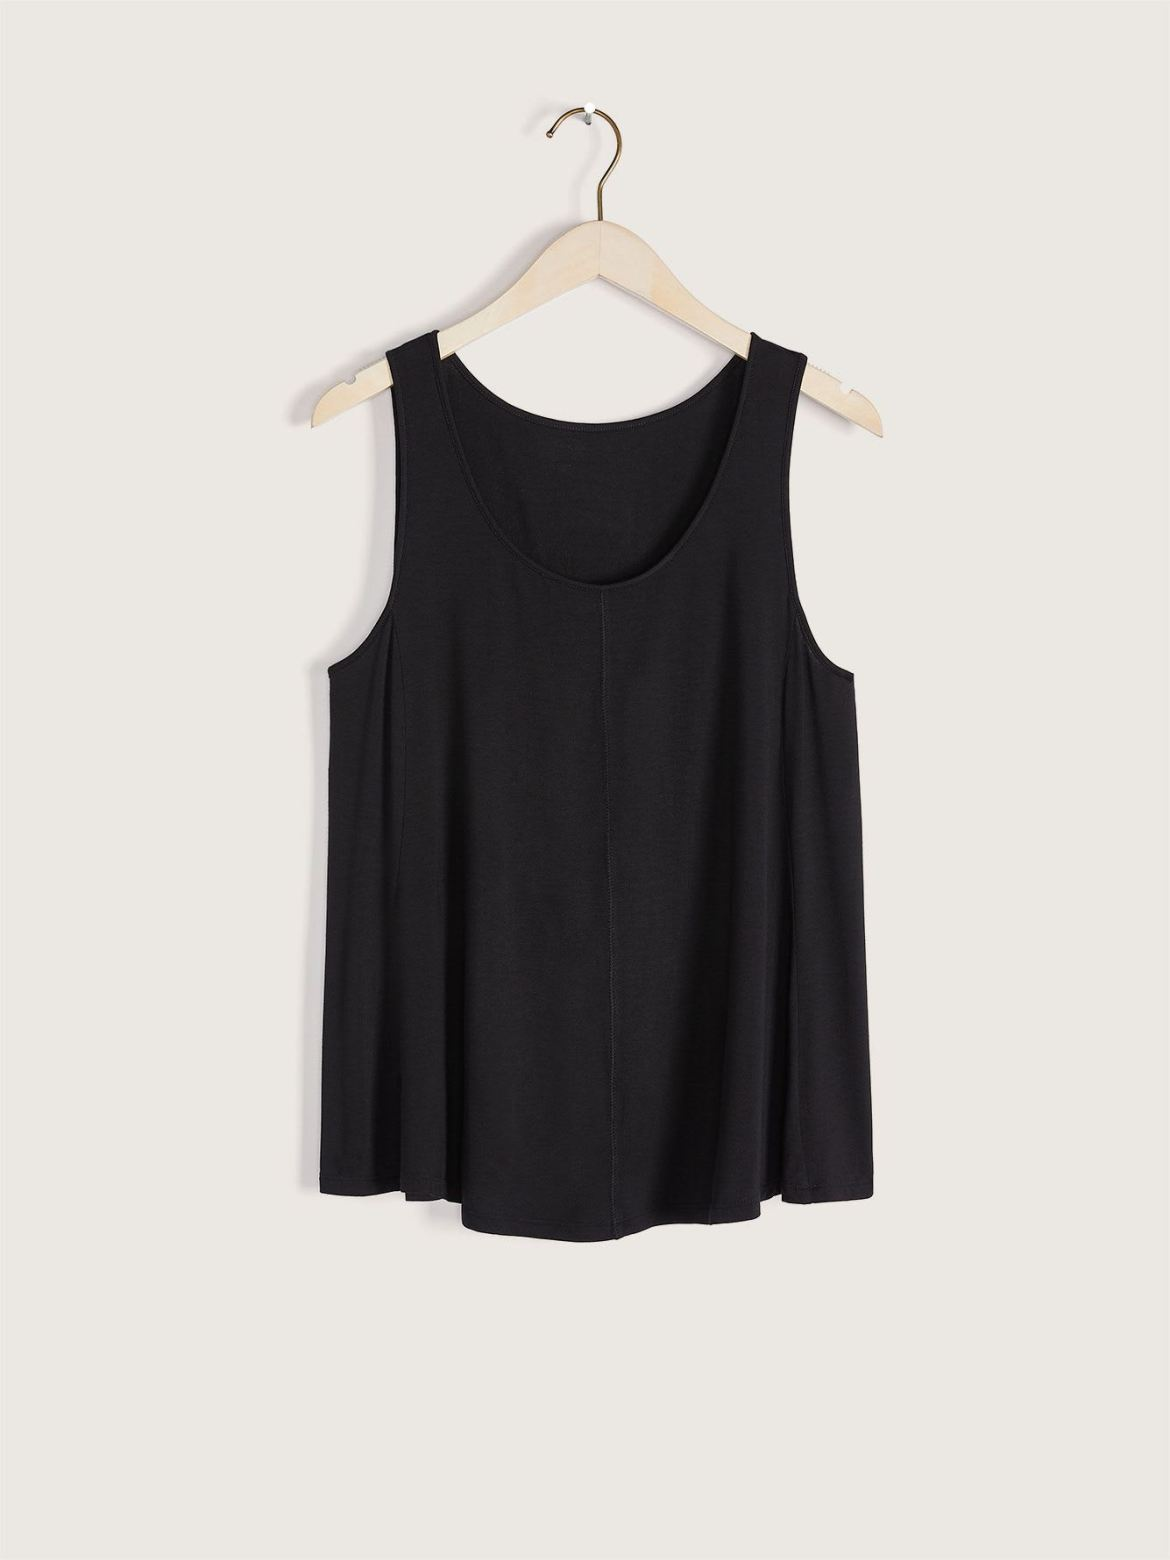 Black Scoop-Neck Swing Tank Top - Addition Elle